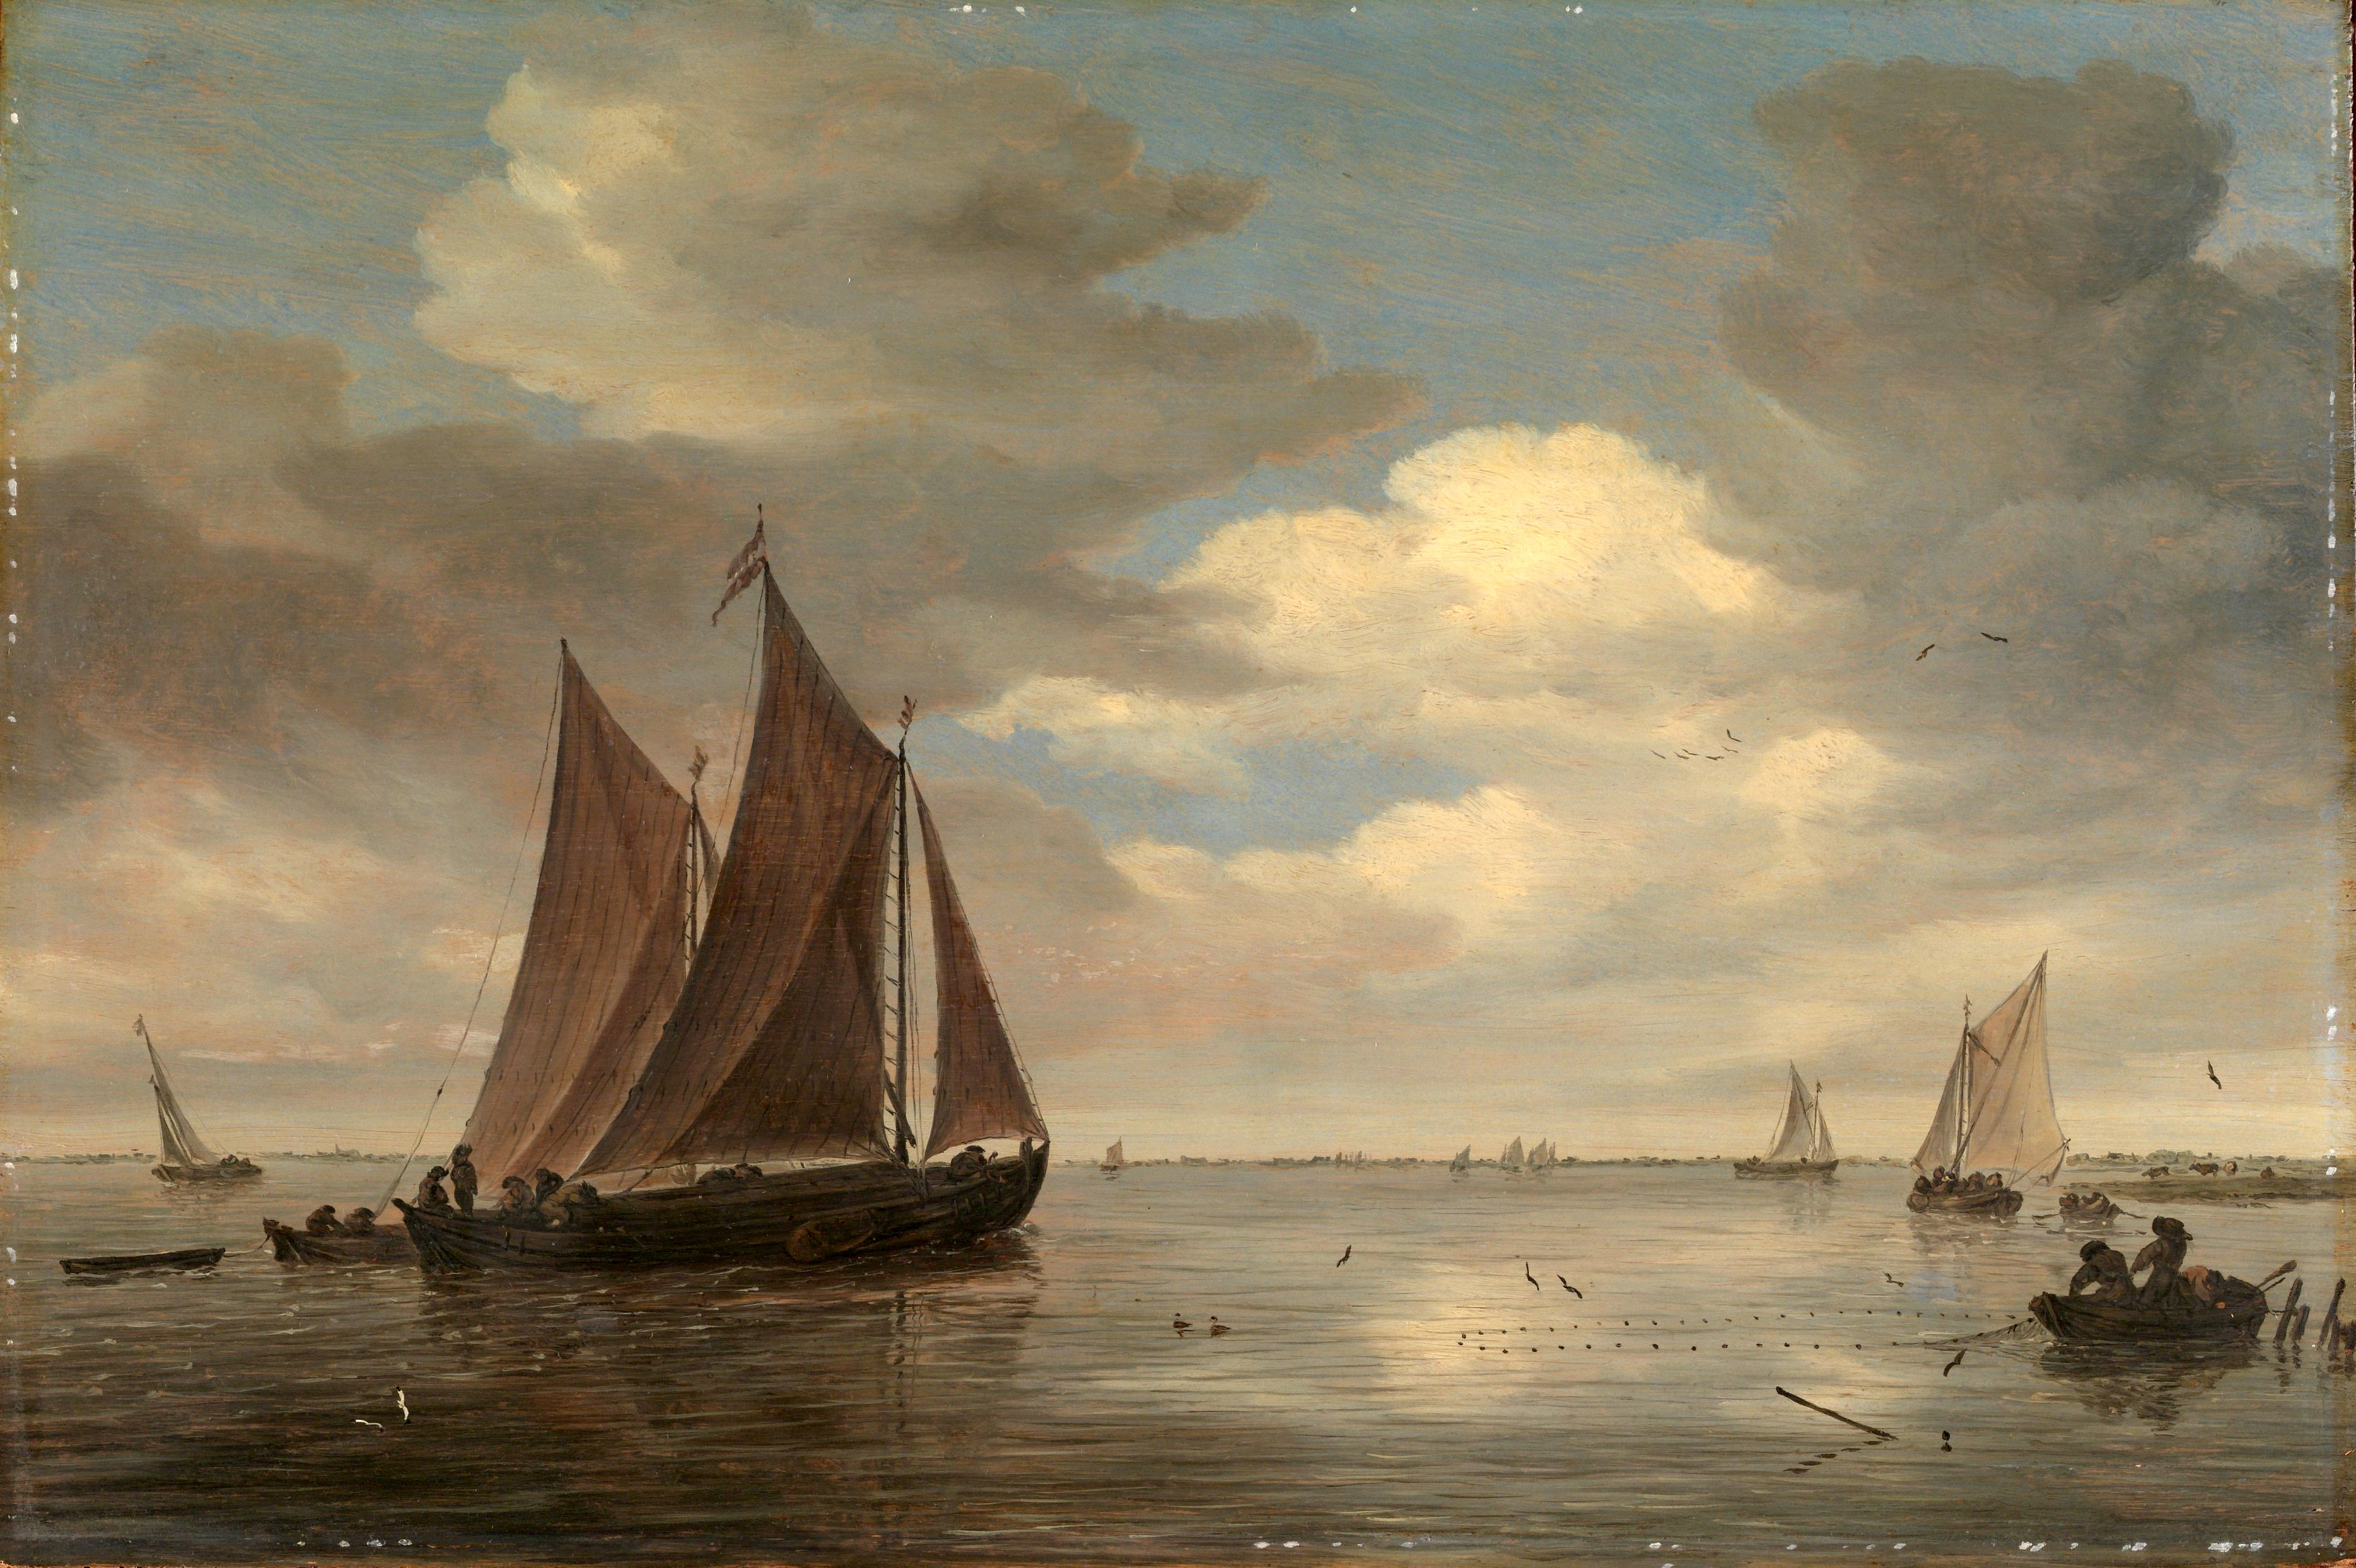 Salomon van Ruysdael – The Metropolitan Museum of Art 2005.331.8. Title: Fishing Boats on a River. Date: early 1660. Materials: oil on wood. Dimensions: 36.2 x 54 cm. Nr.: 2005.331.8. Source: http://images.metmuseum.org/CRDImages/ep/original/DP120419.jpg. I have changed the light and contrast of the original photo.